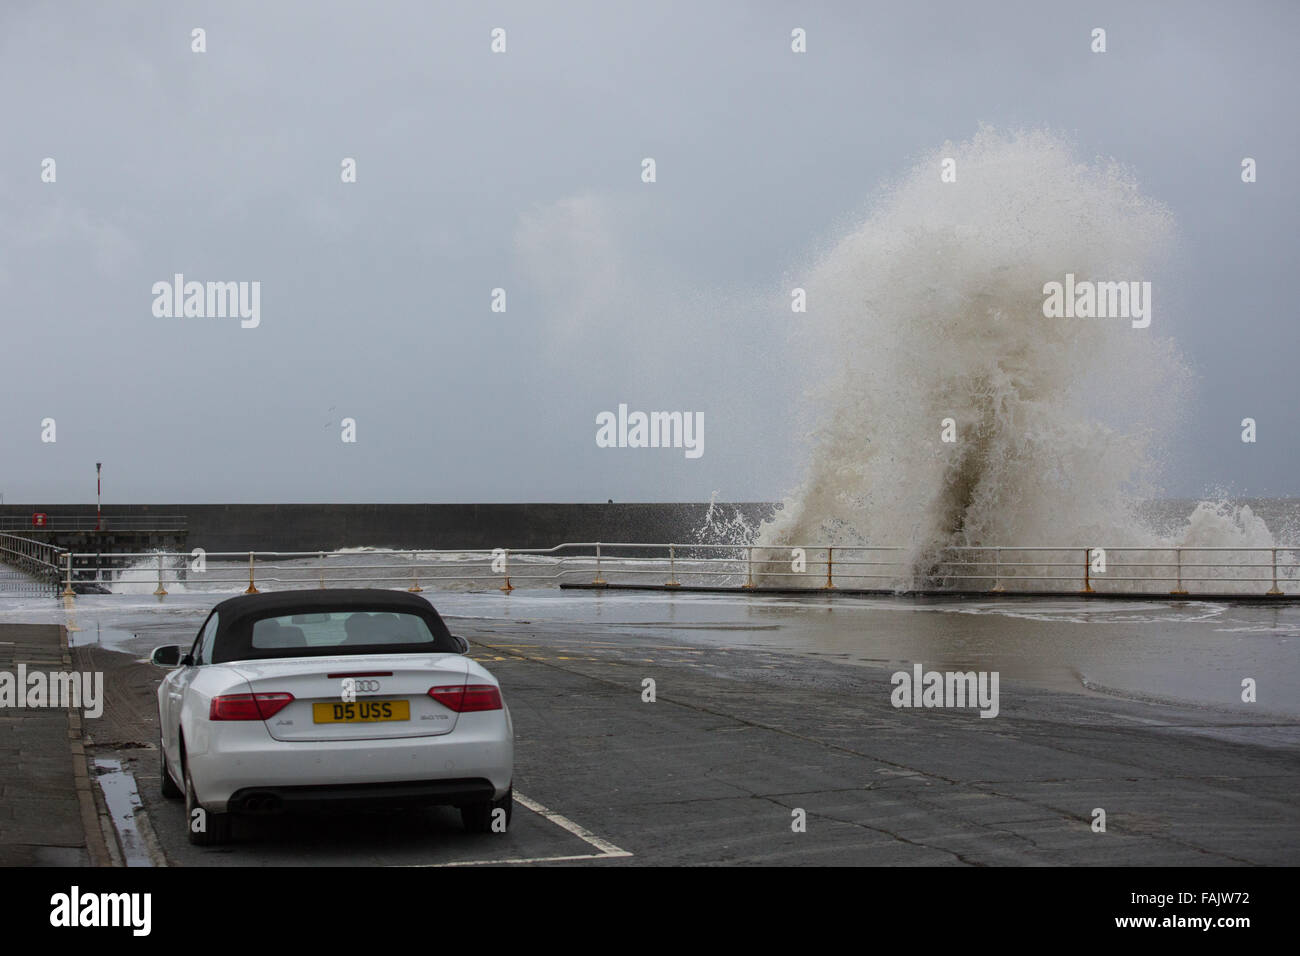 Aberystwyth, Wales, UK. 31 December 2015. New Year's Eve. . 'Wave goodbye to 2015'. As the remnants - Stock Image